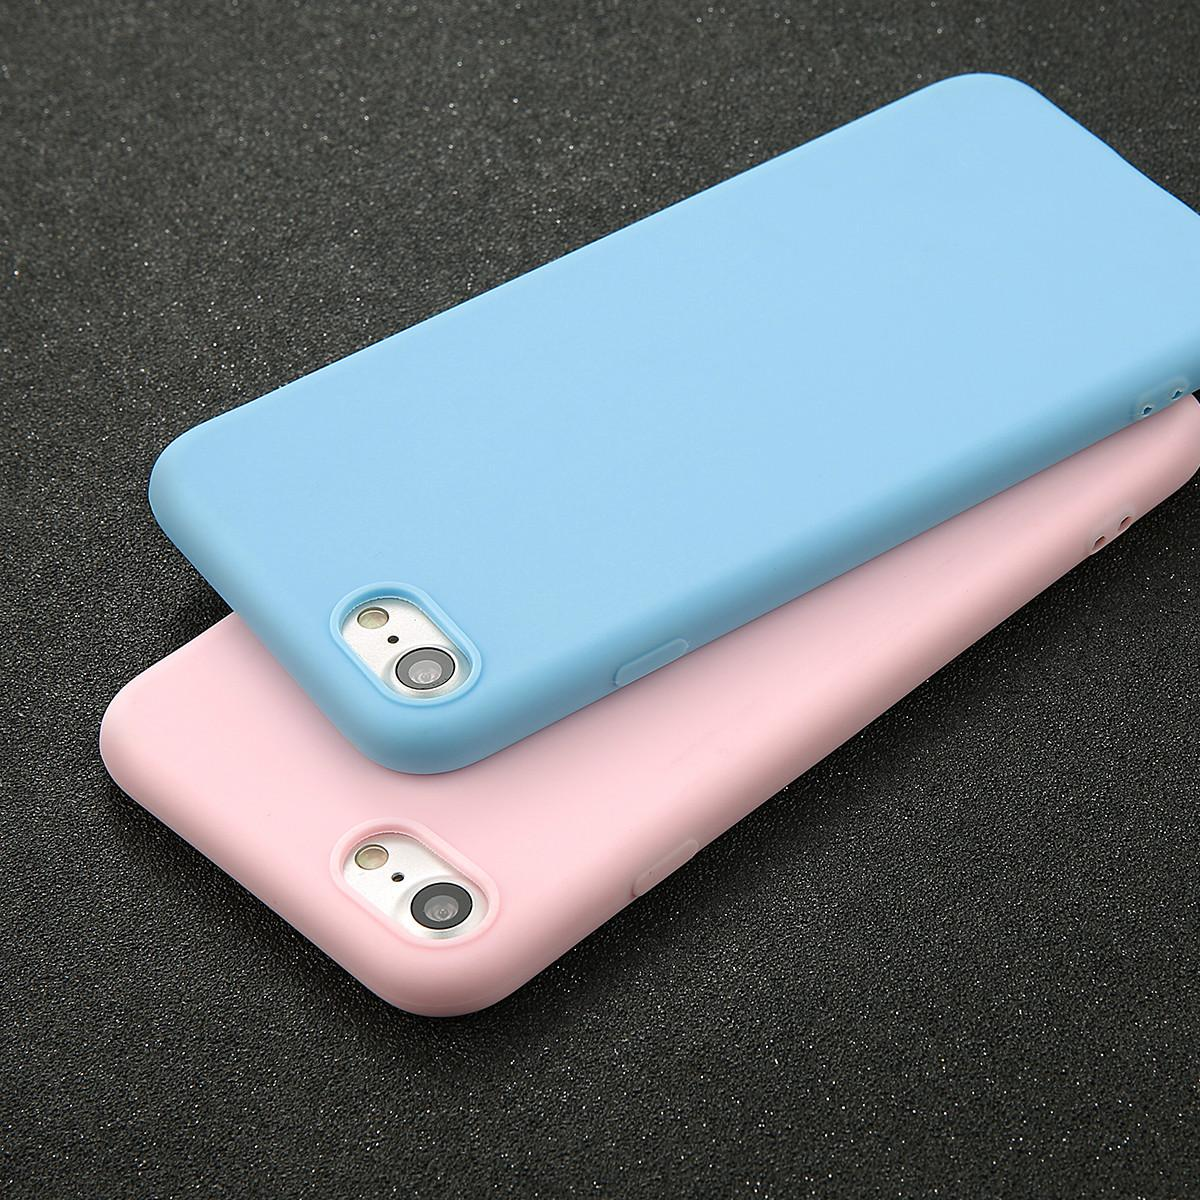 phone case for iphone 7 6 6s 8 x plus 5 5s se simple solid colorphone case for iphone 7 6 6s 8 x plus 5 5s se simple solid color ultrathin soft tpu cases fashion candy color back cover customized phone cases cute phone